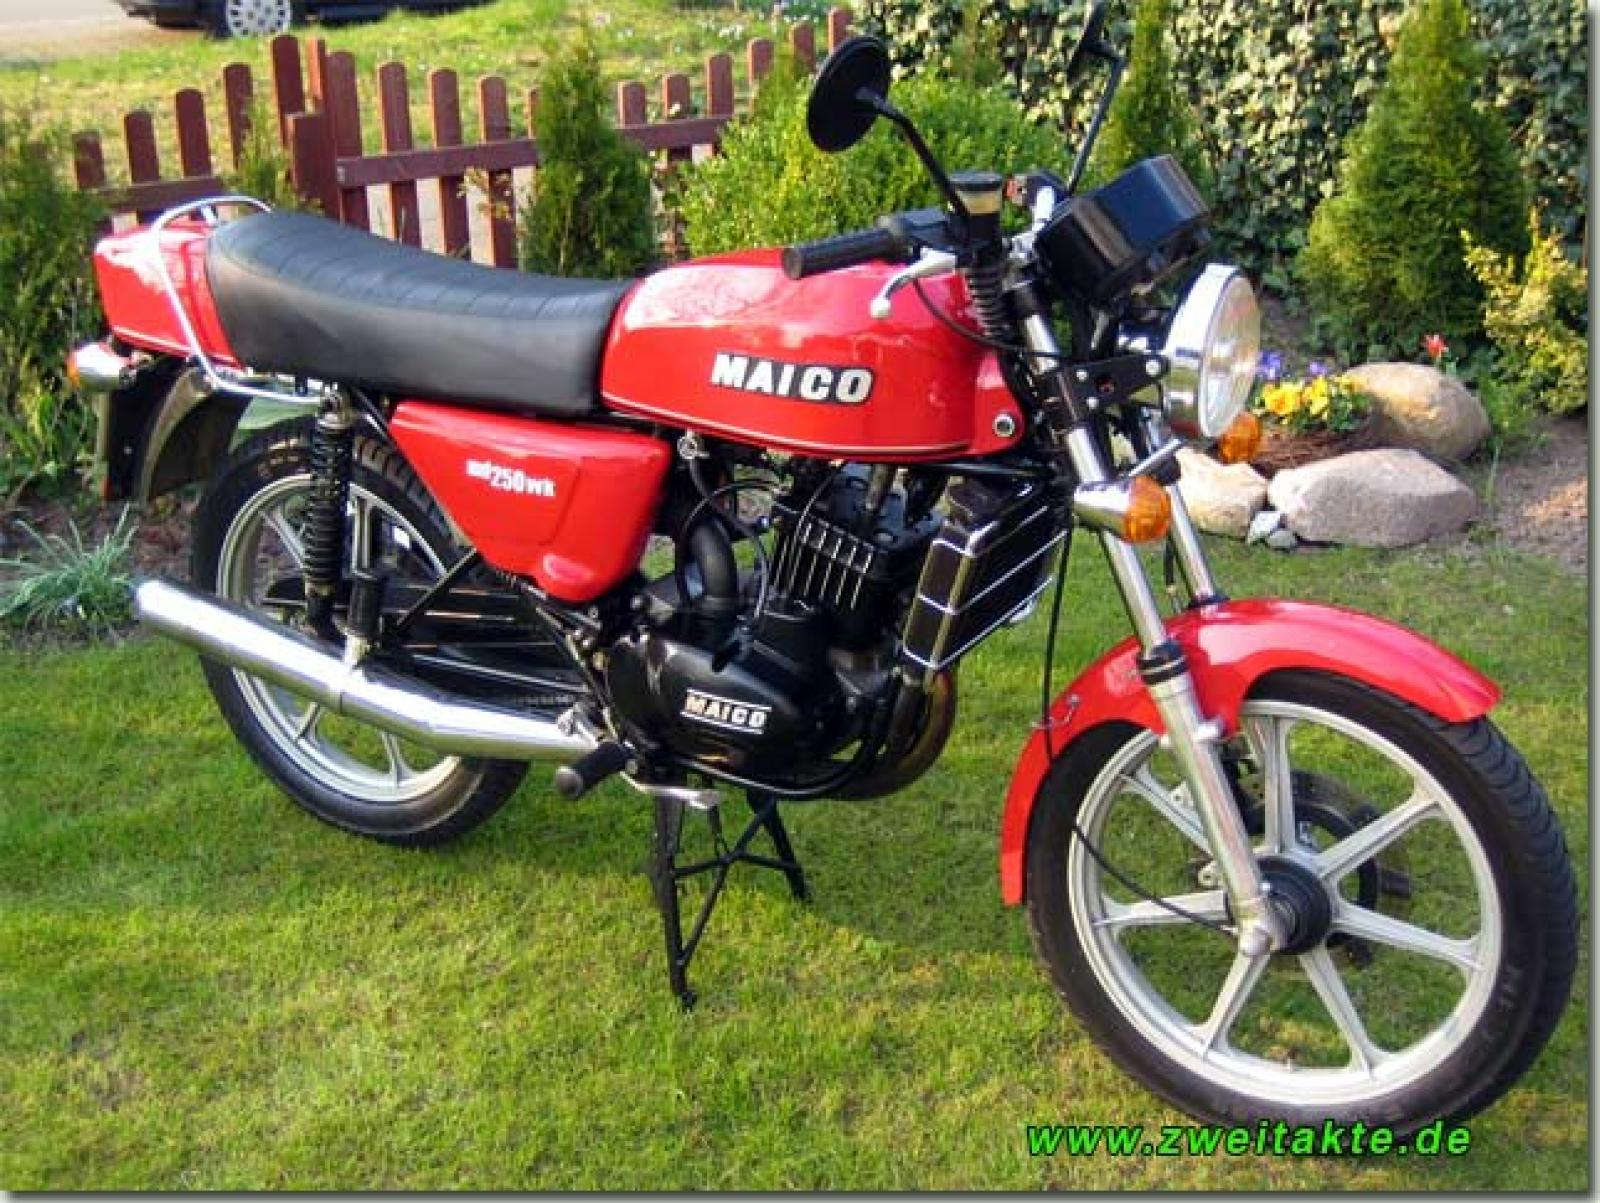 Maico MD 250 WK images #103399